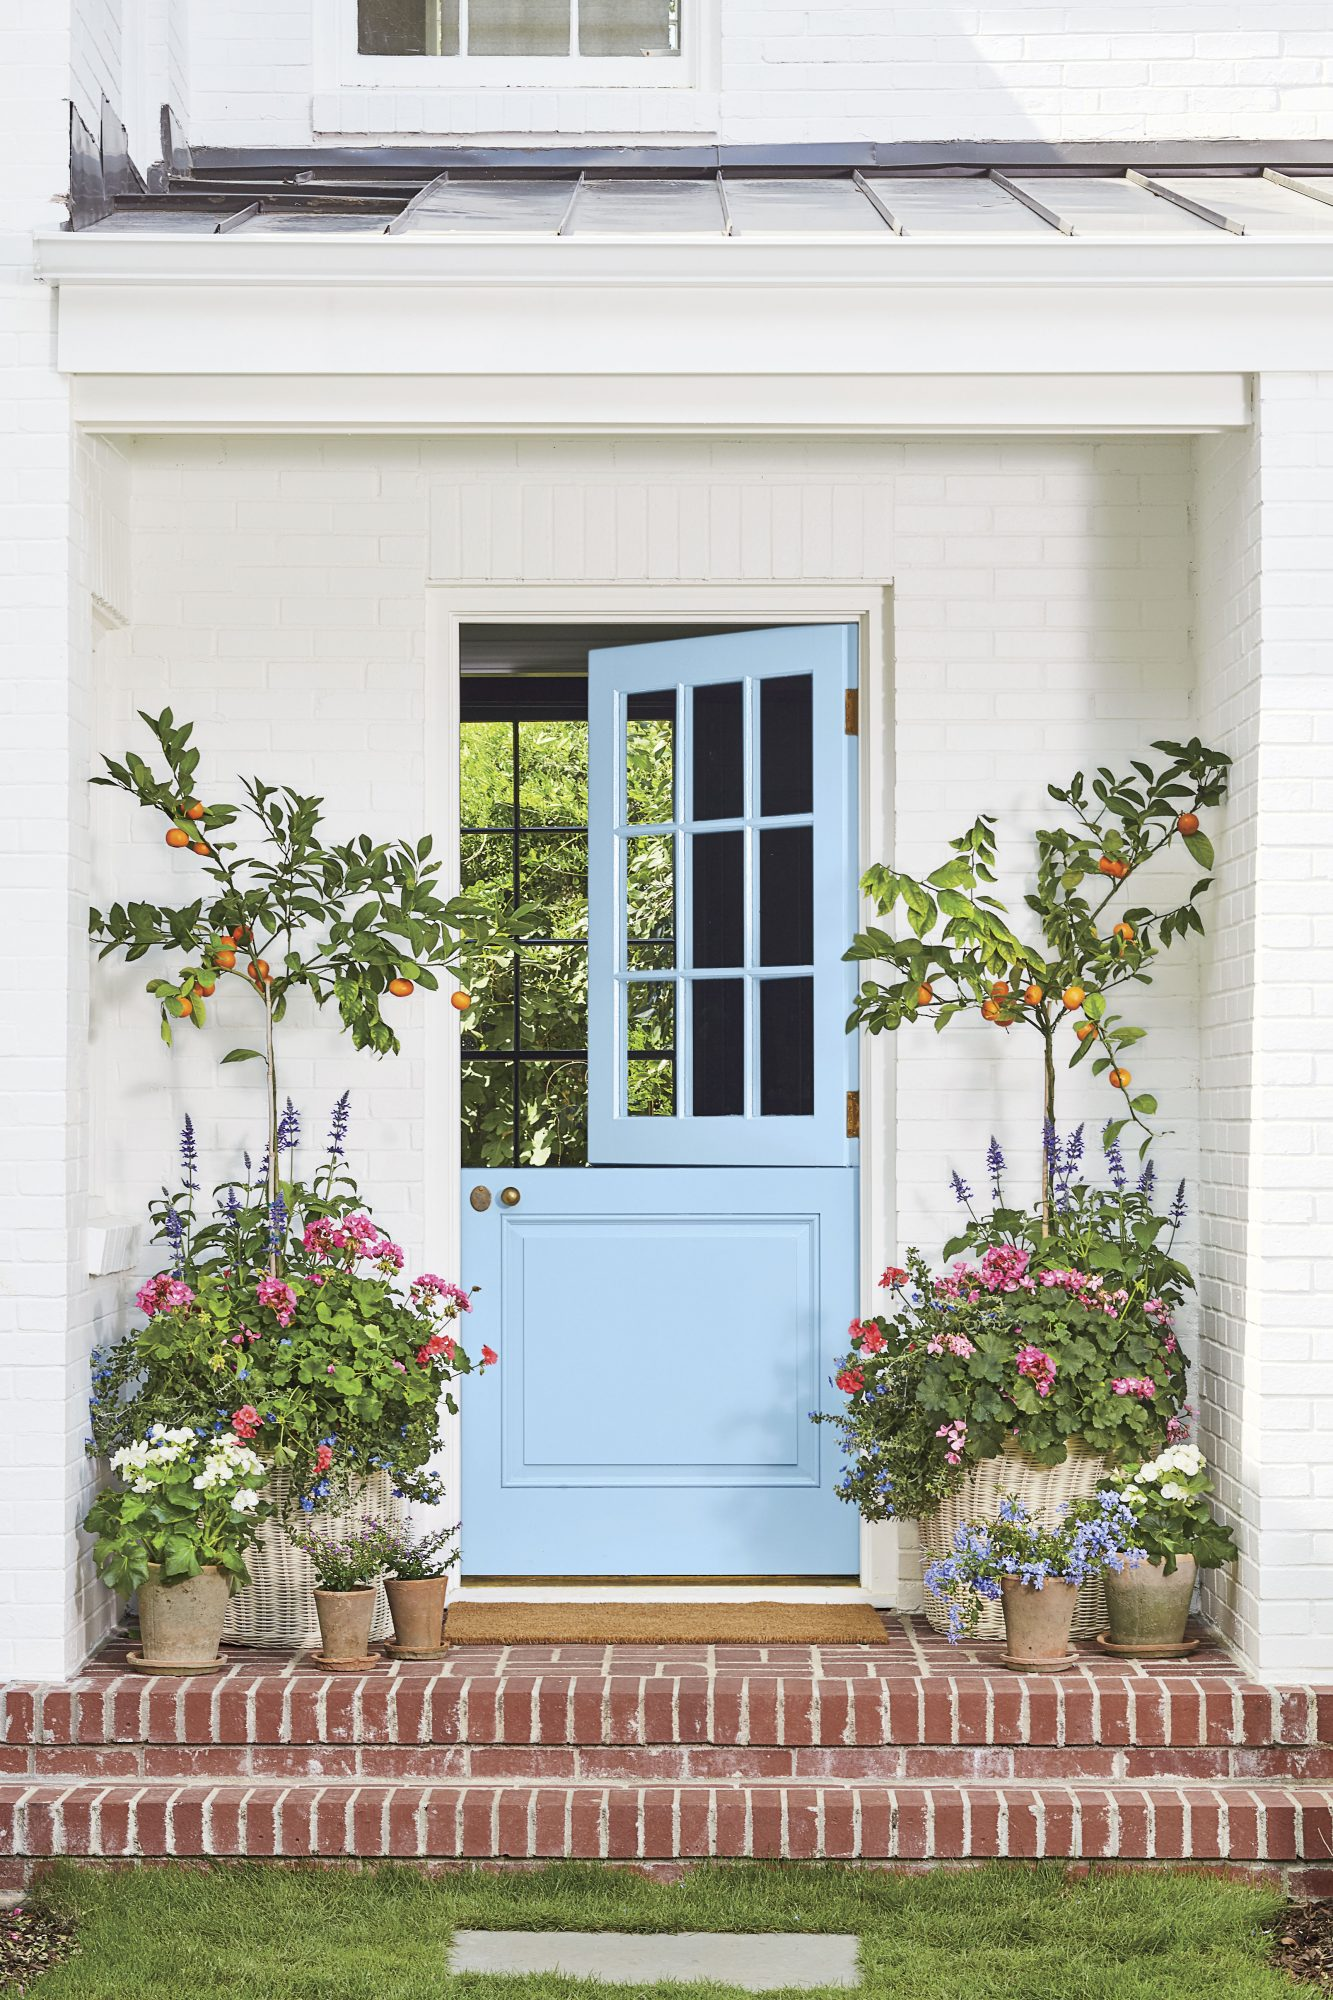 Blue Skies Front Door with Orange Trees and Flowers